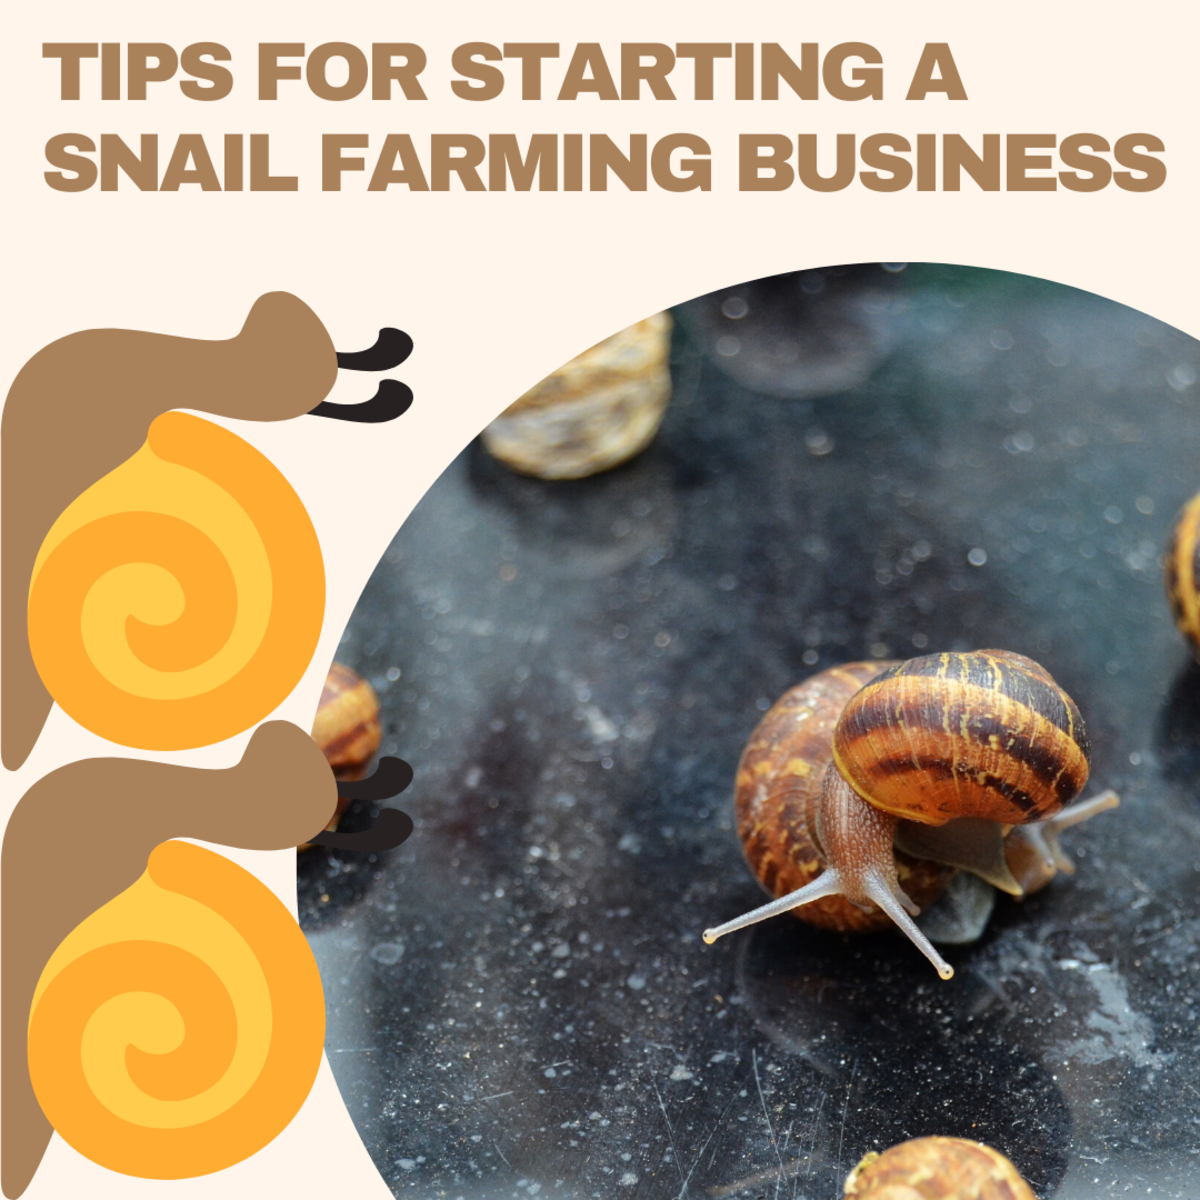 Before you start a snail farming business, take these tips into consideration.